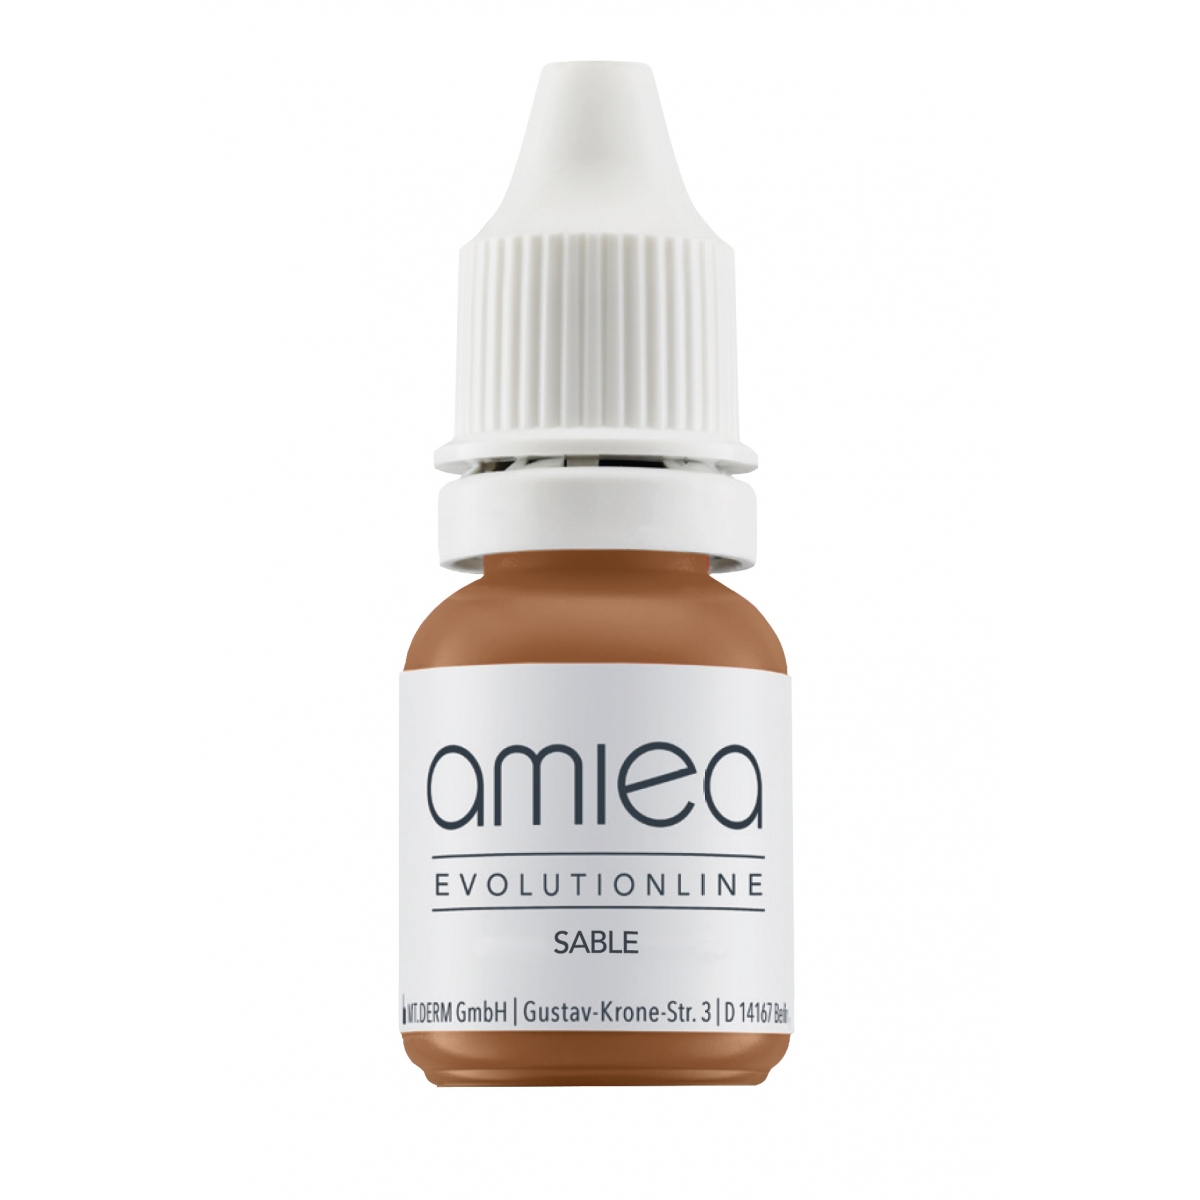 Evolutionline (10 ml) - PIGMENTS AMIEA EVOLUTIONLINE SABLE, 10 ml